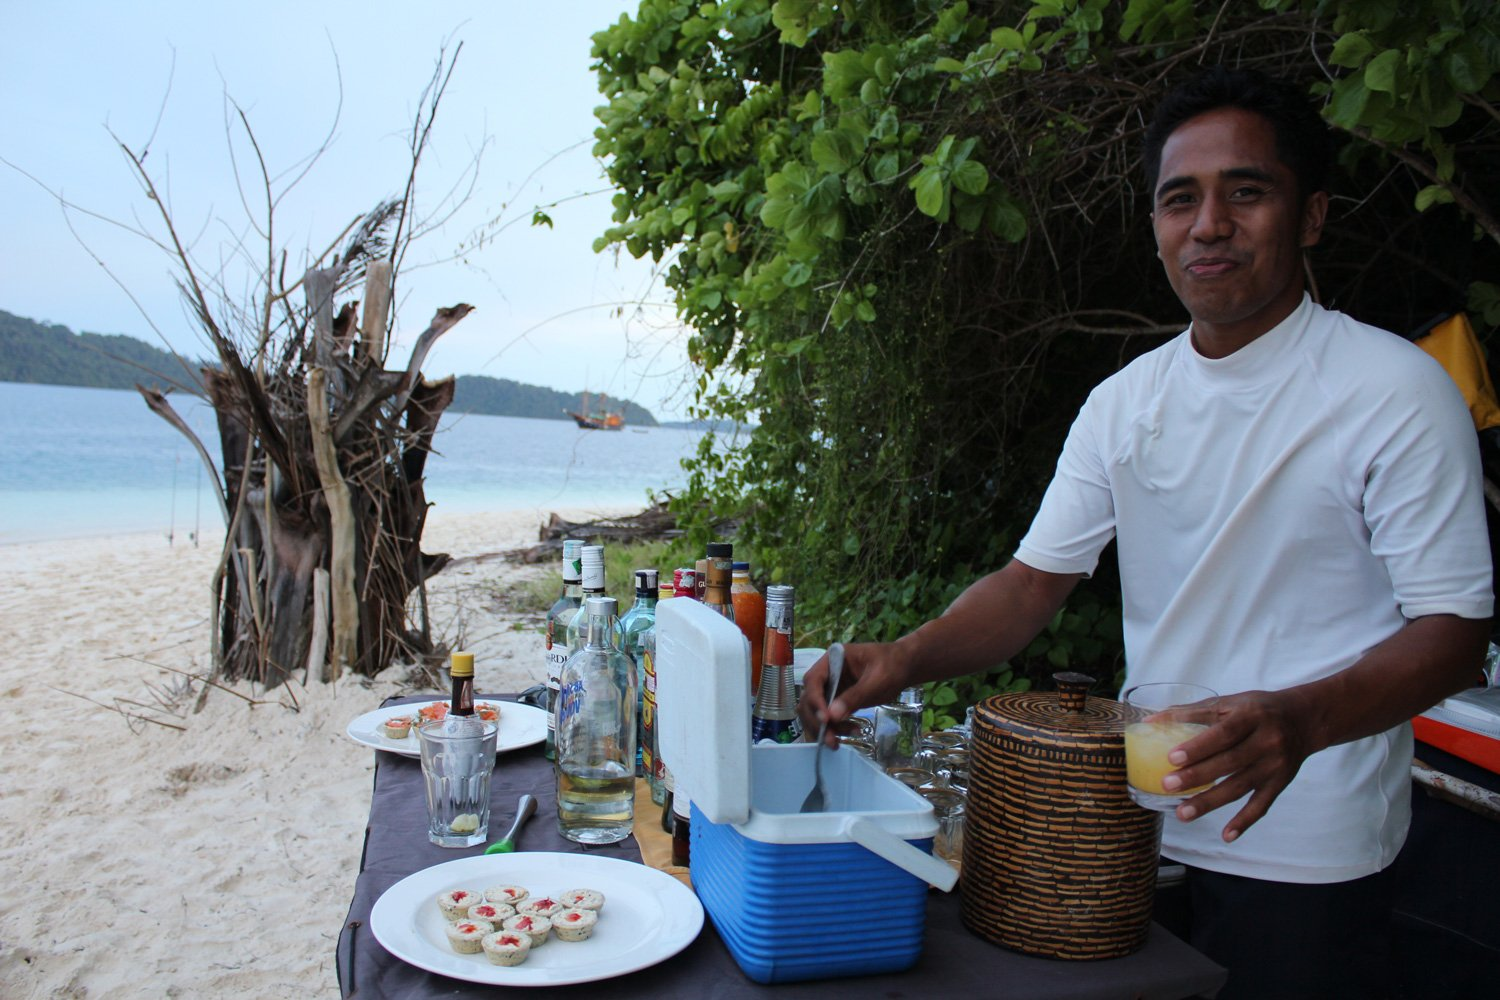 Our barman preparing some beach cocktails